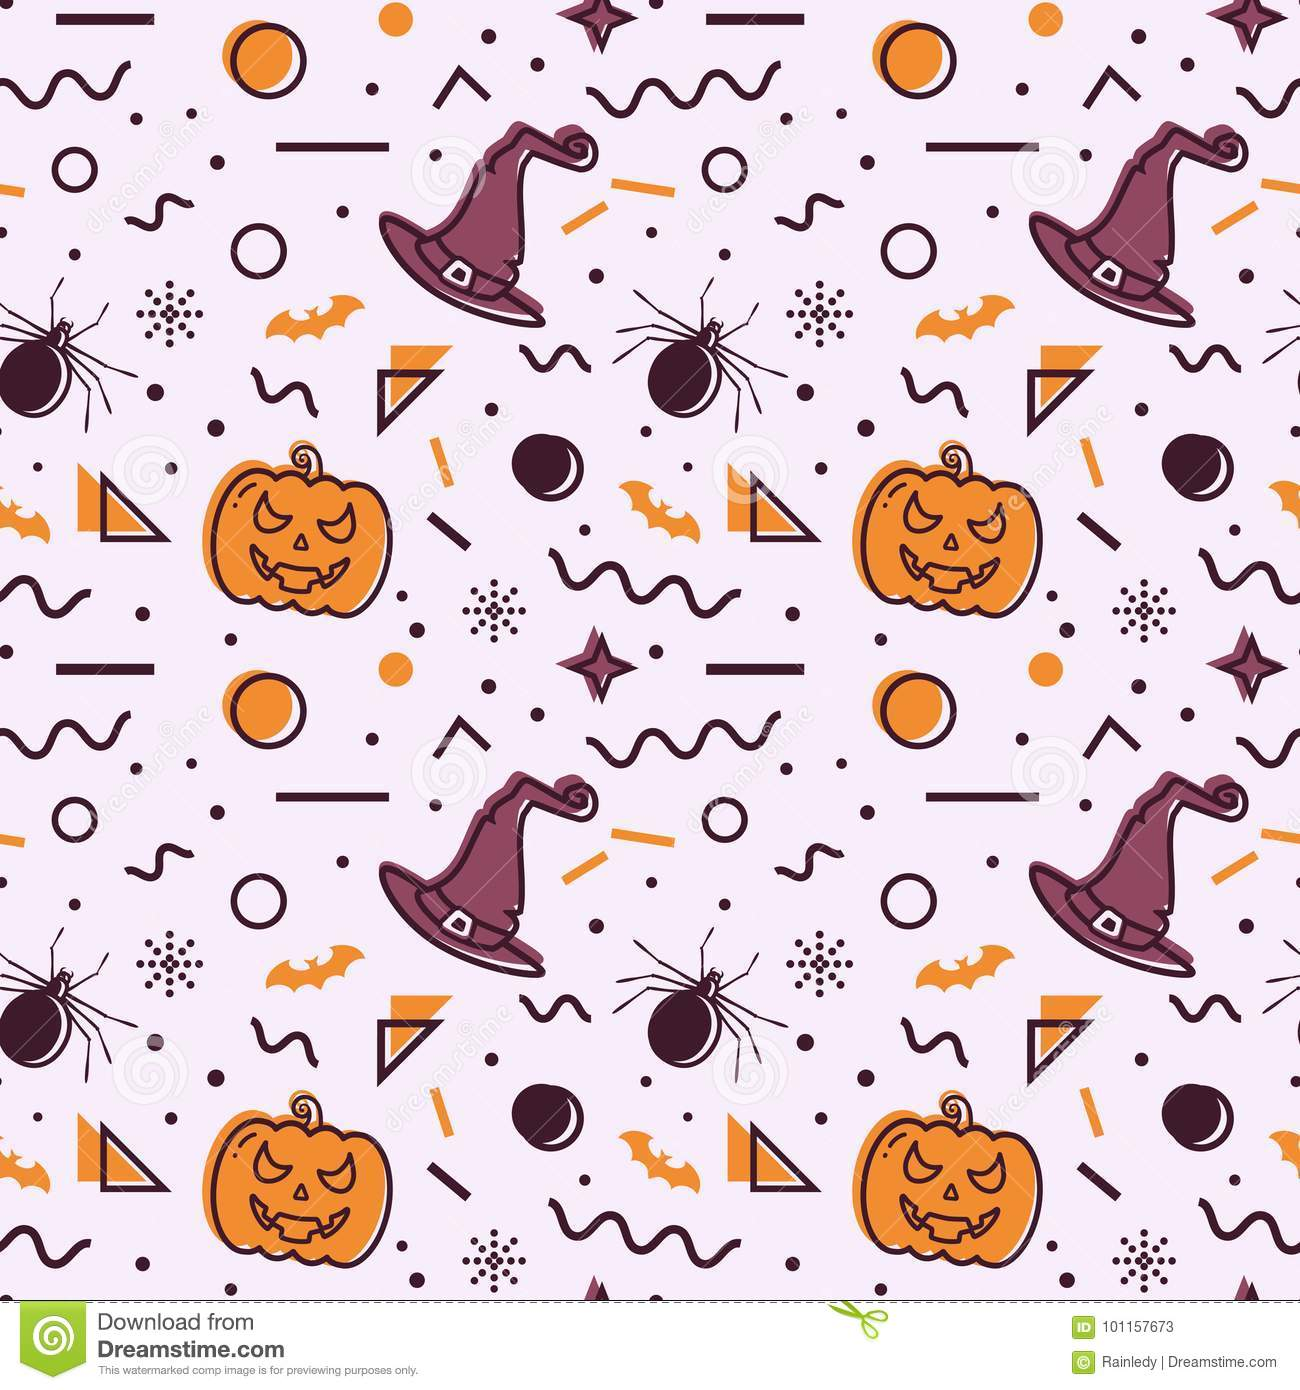 download halloween seamless background memphis pattern stock vector illustration of orange abstract